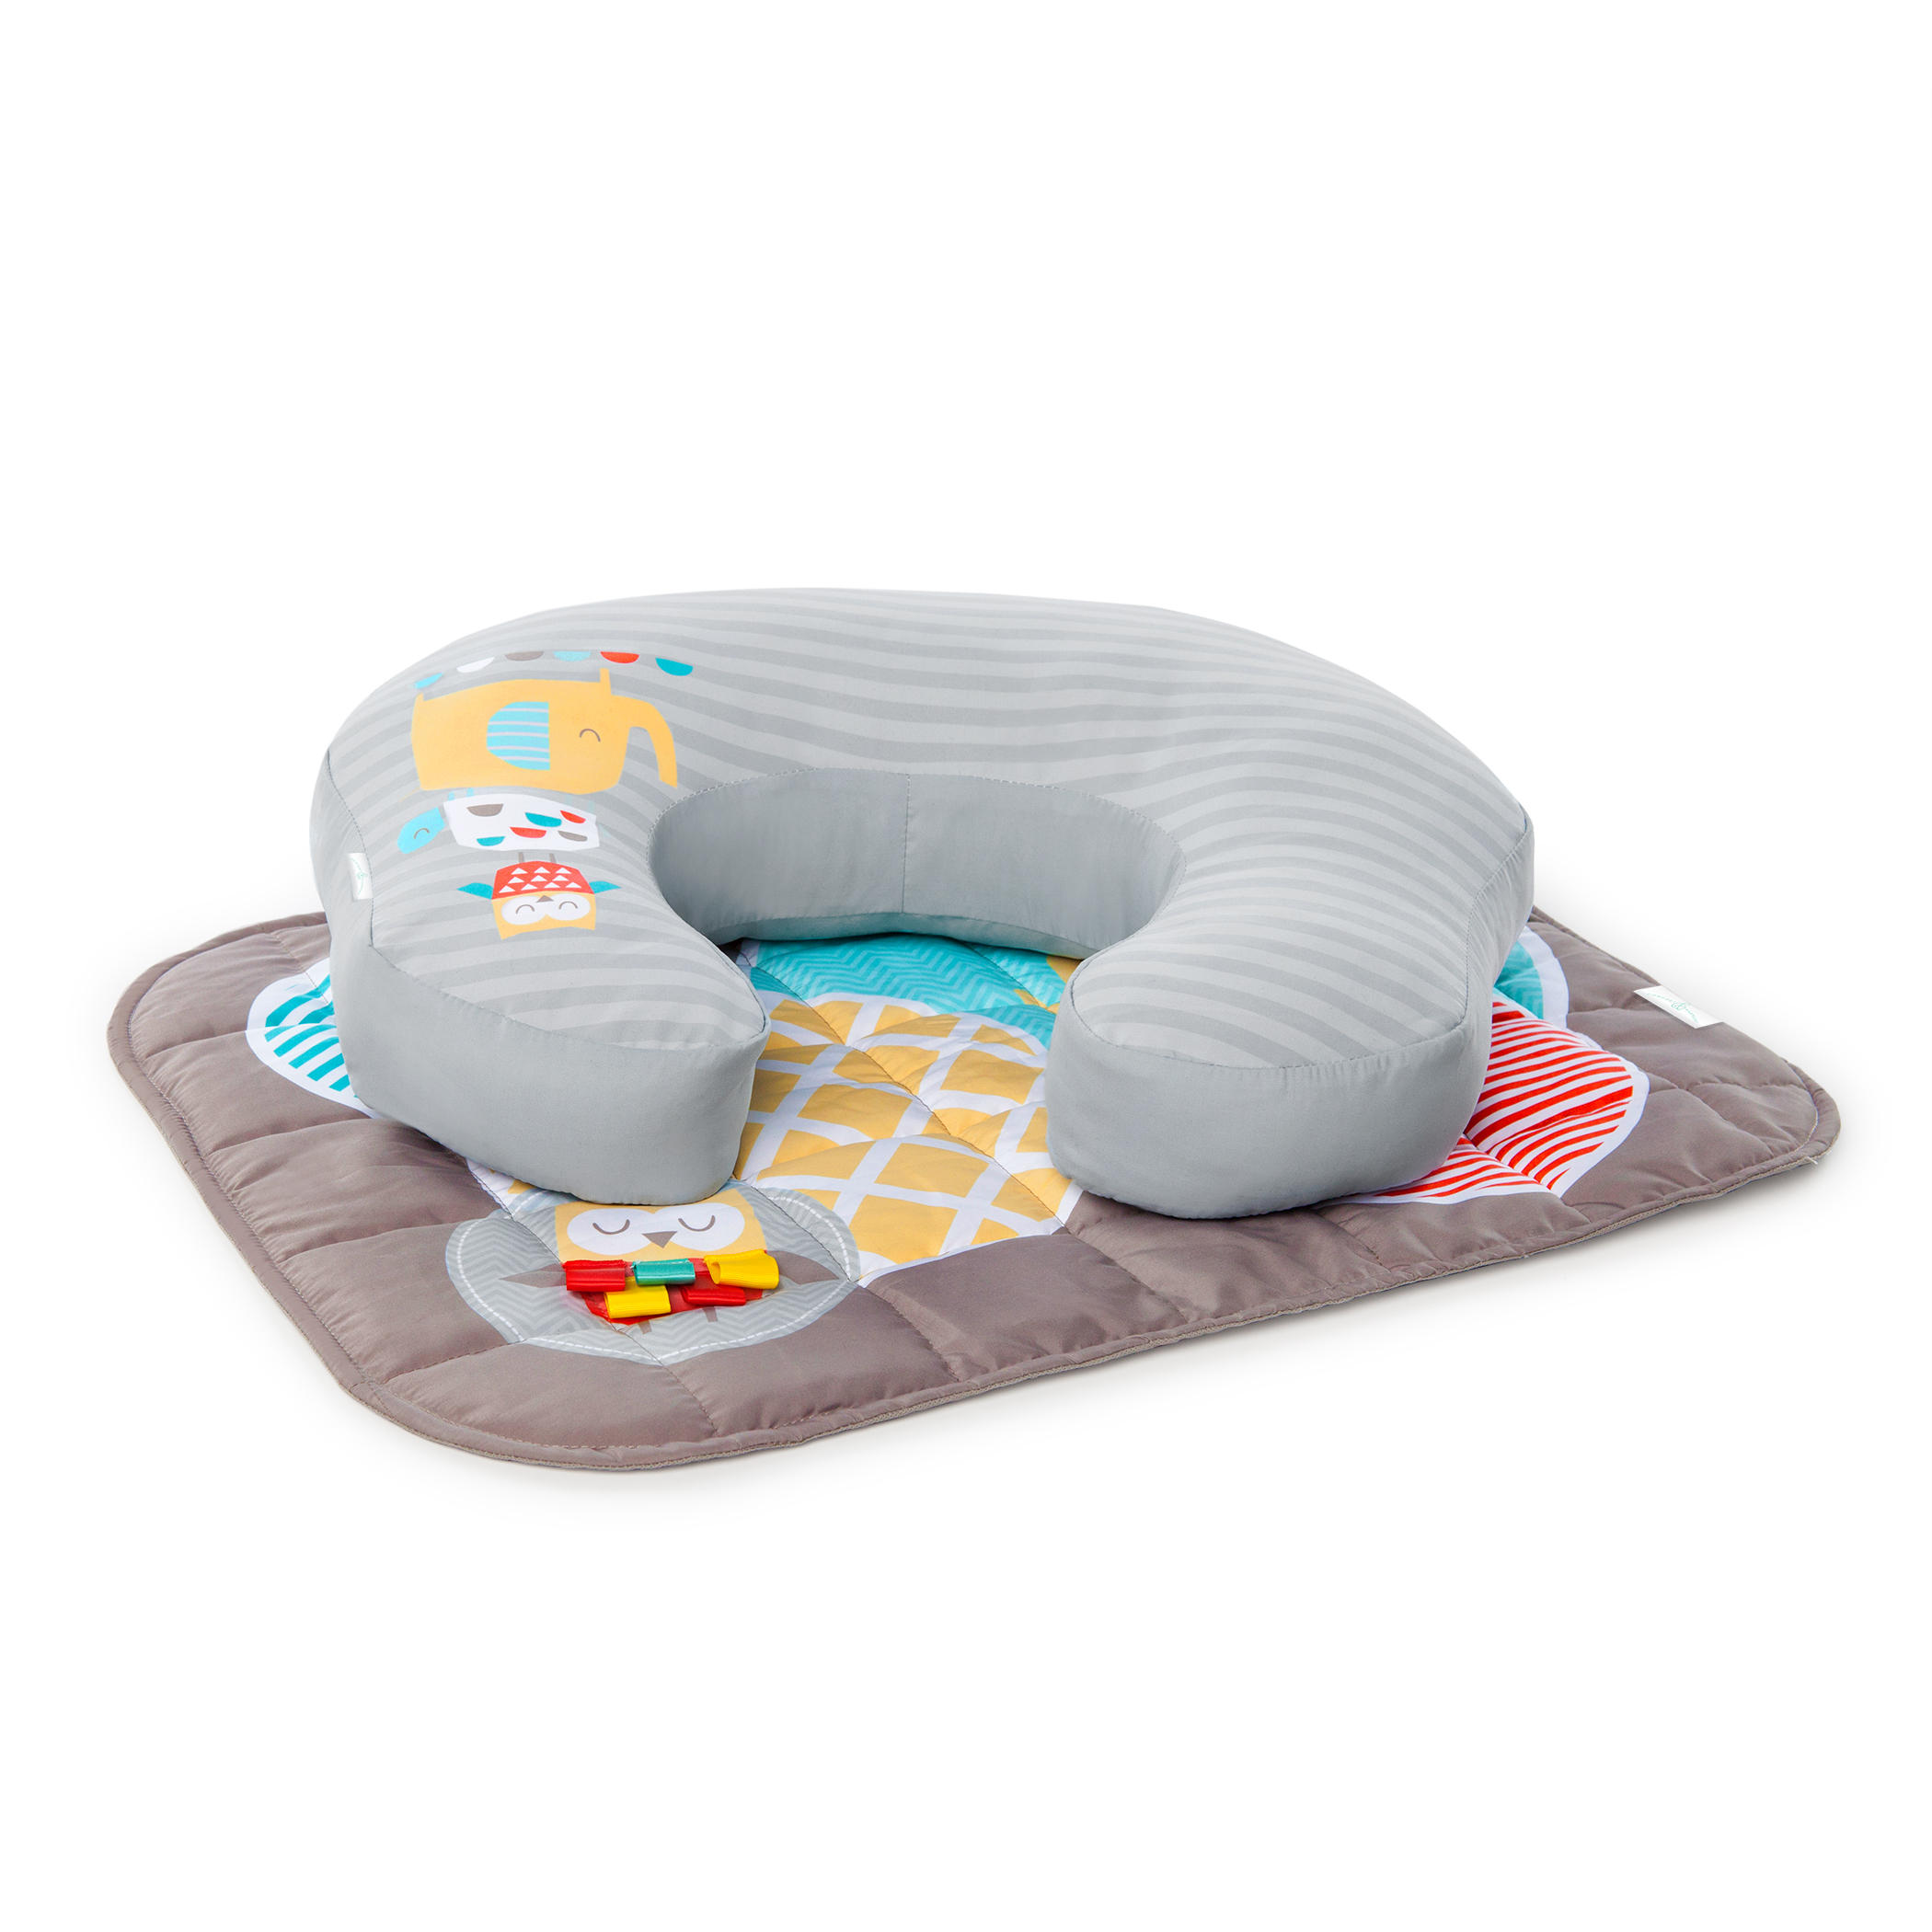 Simply mombo™ Love to Lounge Mat™ and Nursing Pillow